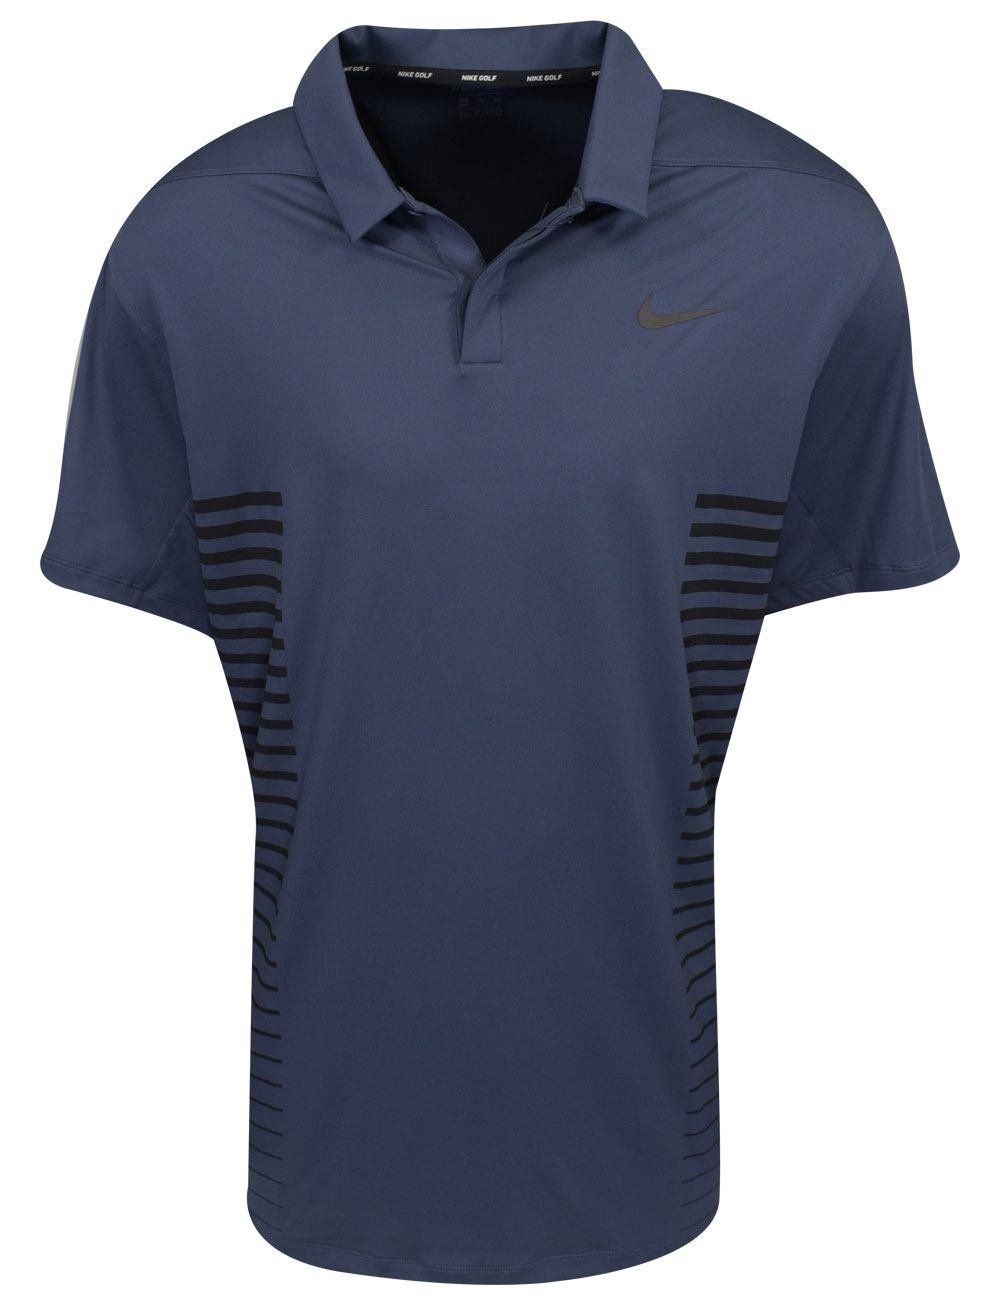 8aabf8d5 Top2: Opna Women's Ladies Moisture Wicking Athletic Golf Polo Shirts Tops &  Tees